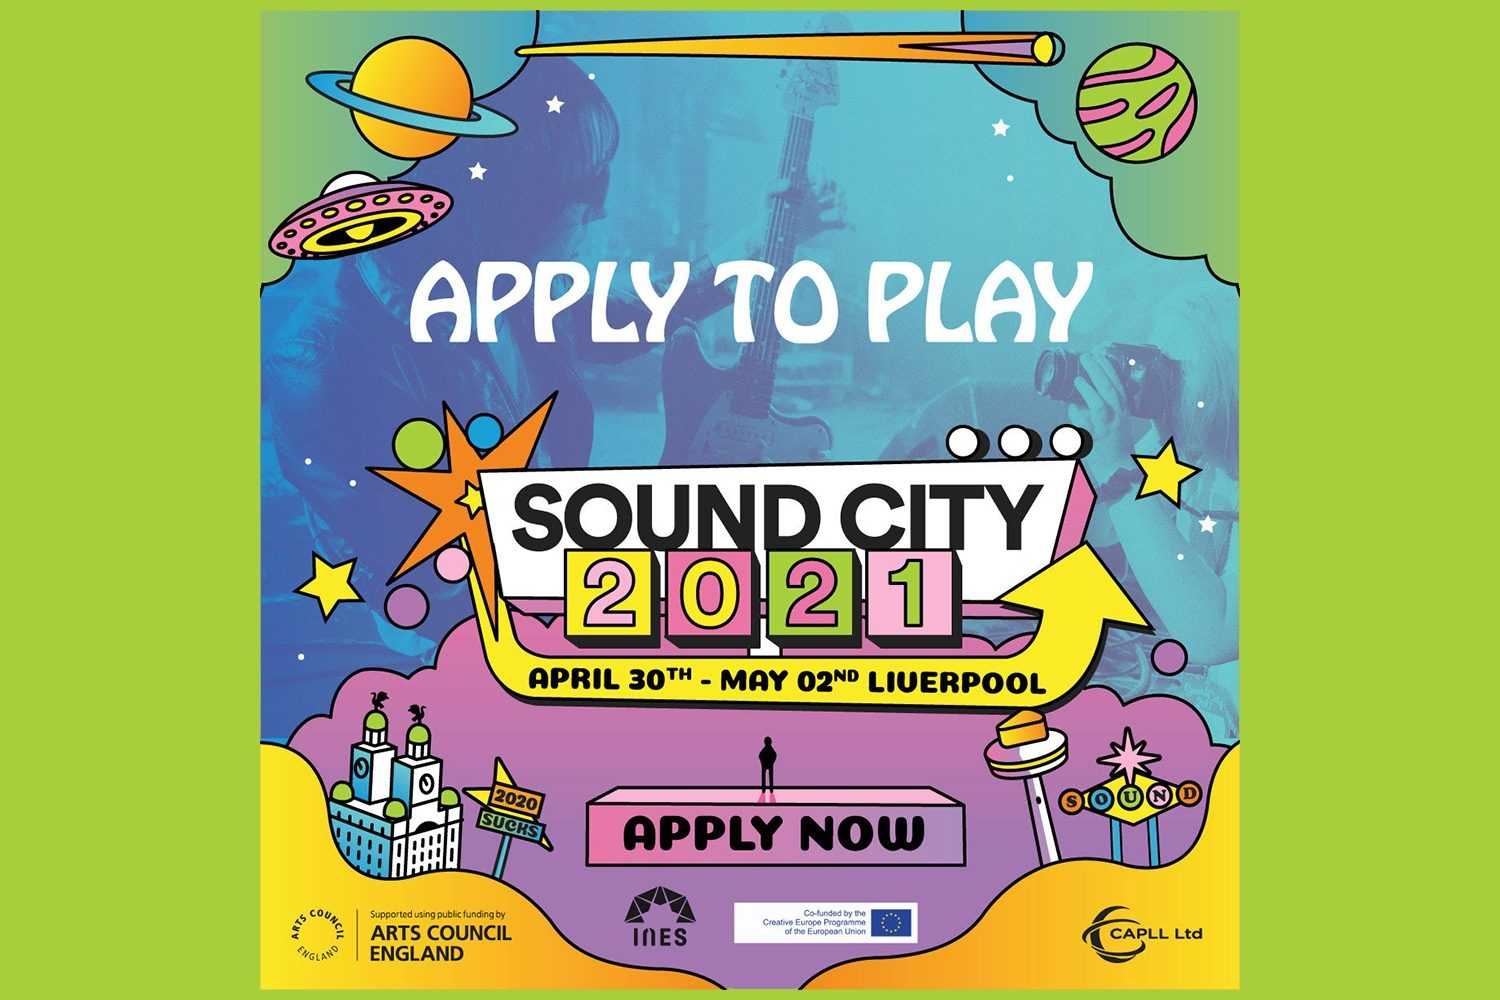 Want to play Sound City? The Liverpool festival's Apply To Play programme is open